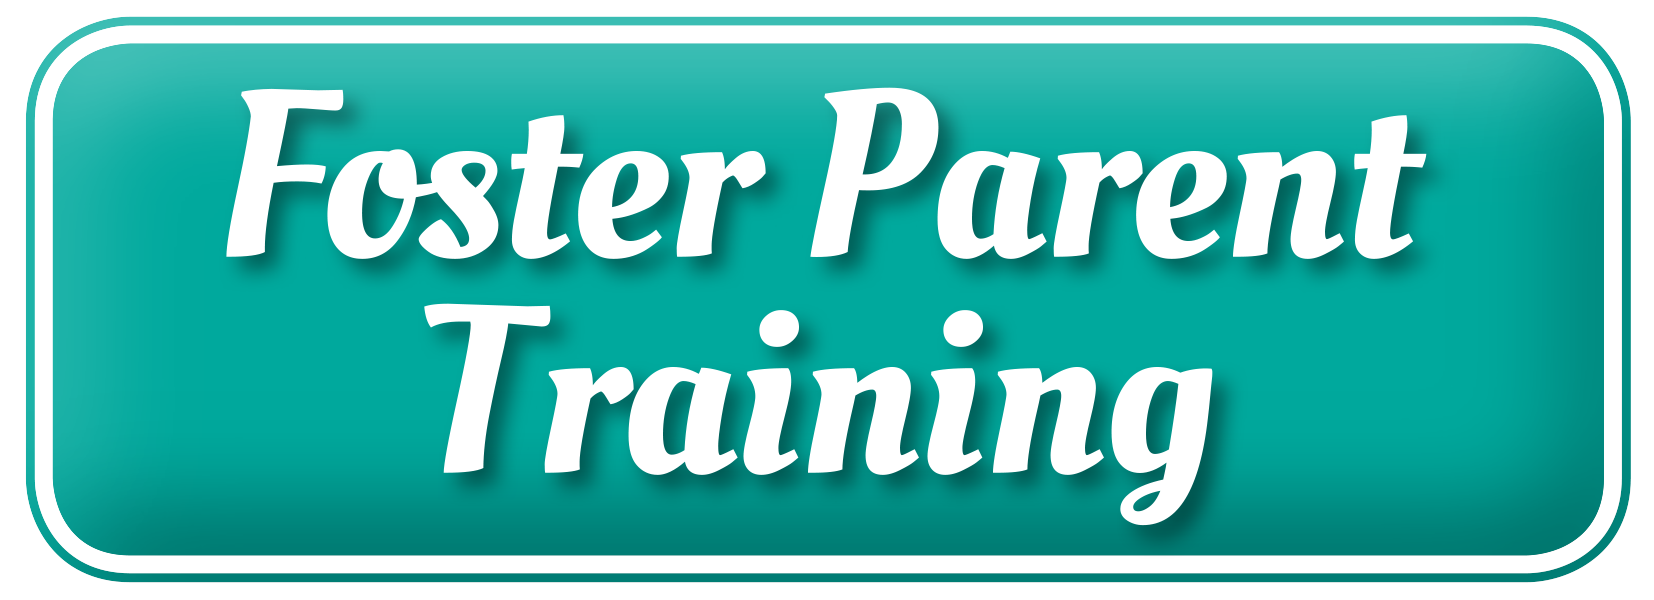 Foster Parent Training Button